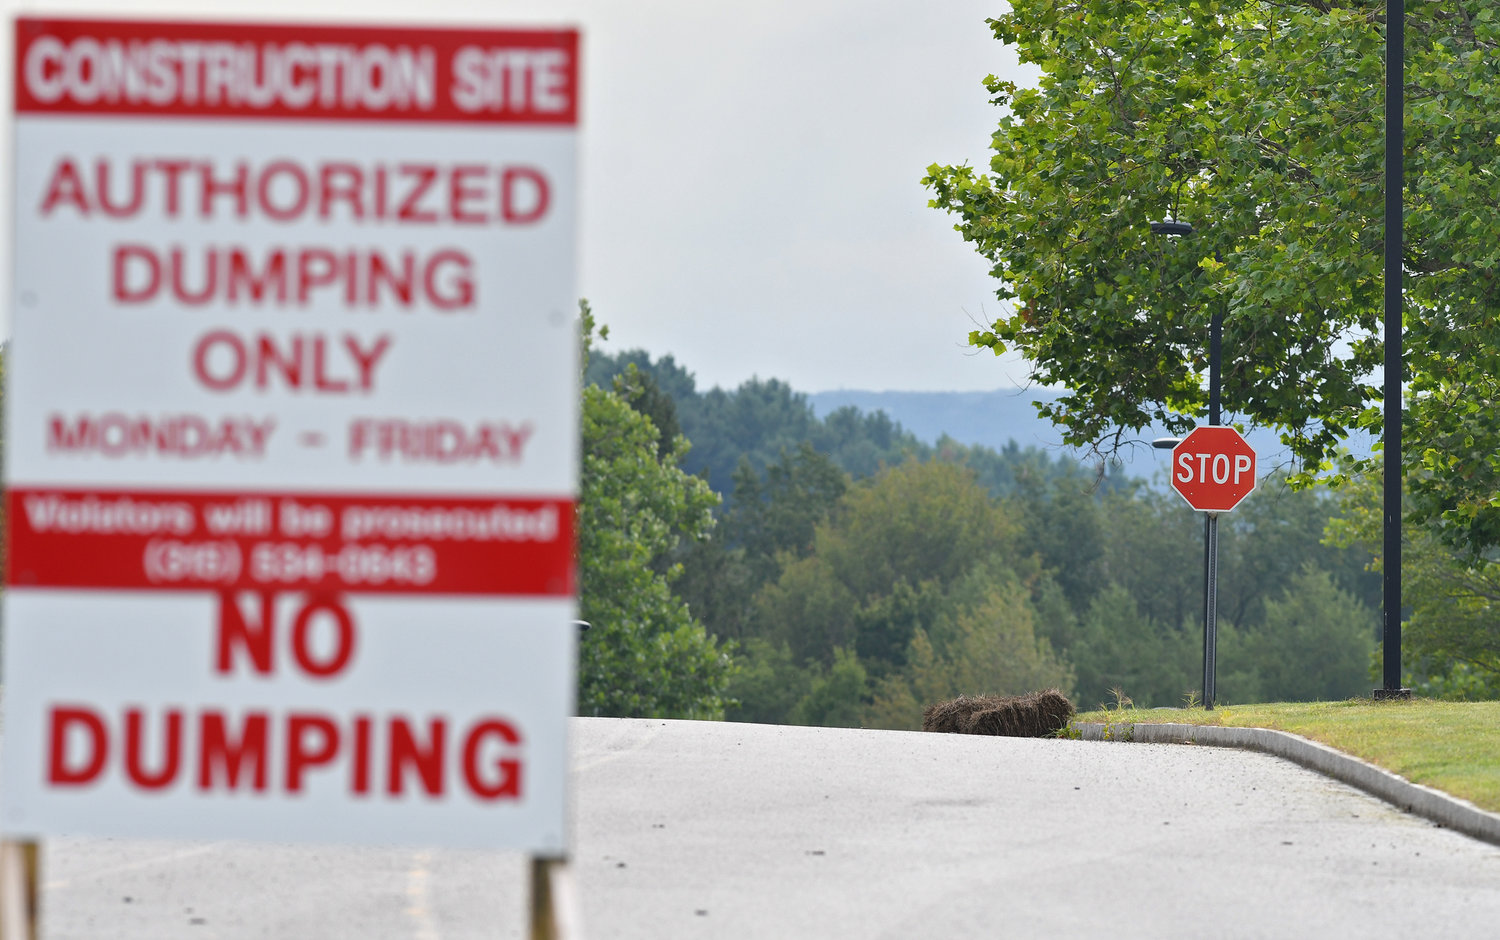 PLANS APPROVED — Over the hill and beyond the construction site sign — where the Skyline housing complex at the former Griffiss Air Force Base once was — is where plans call for a massive Orgill distribution center to be built on Atlas Drive. The project received a trio of needed approvals on Tuesday night from the city's Planning Board. Company officials predict a tentative opening date of January 2022 for the center which is expected to employ 225 workers.